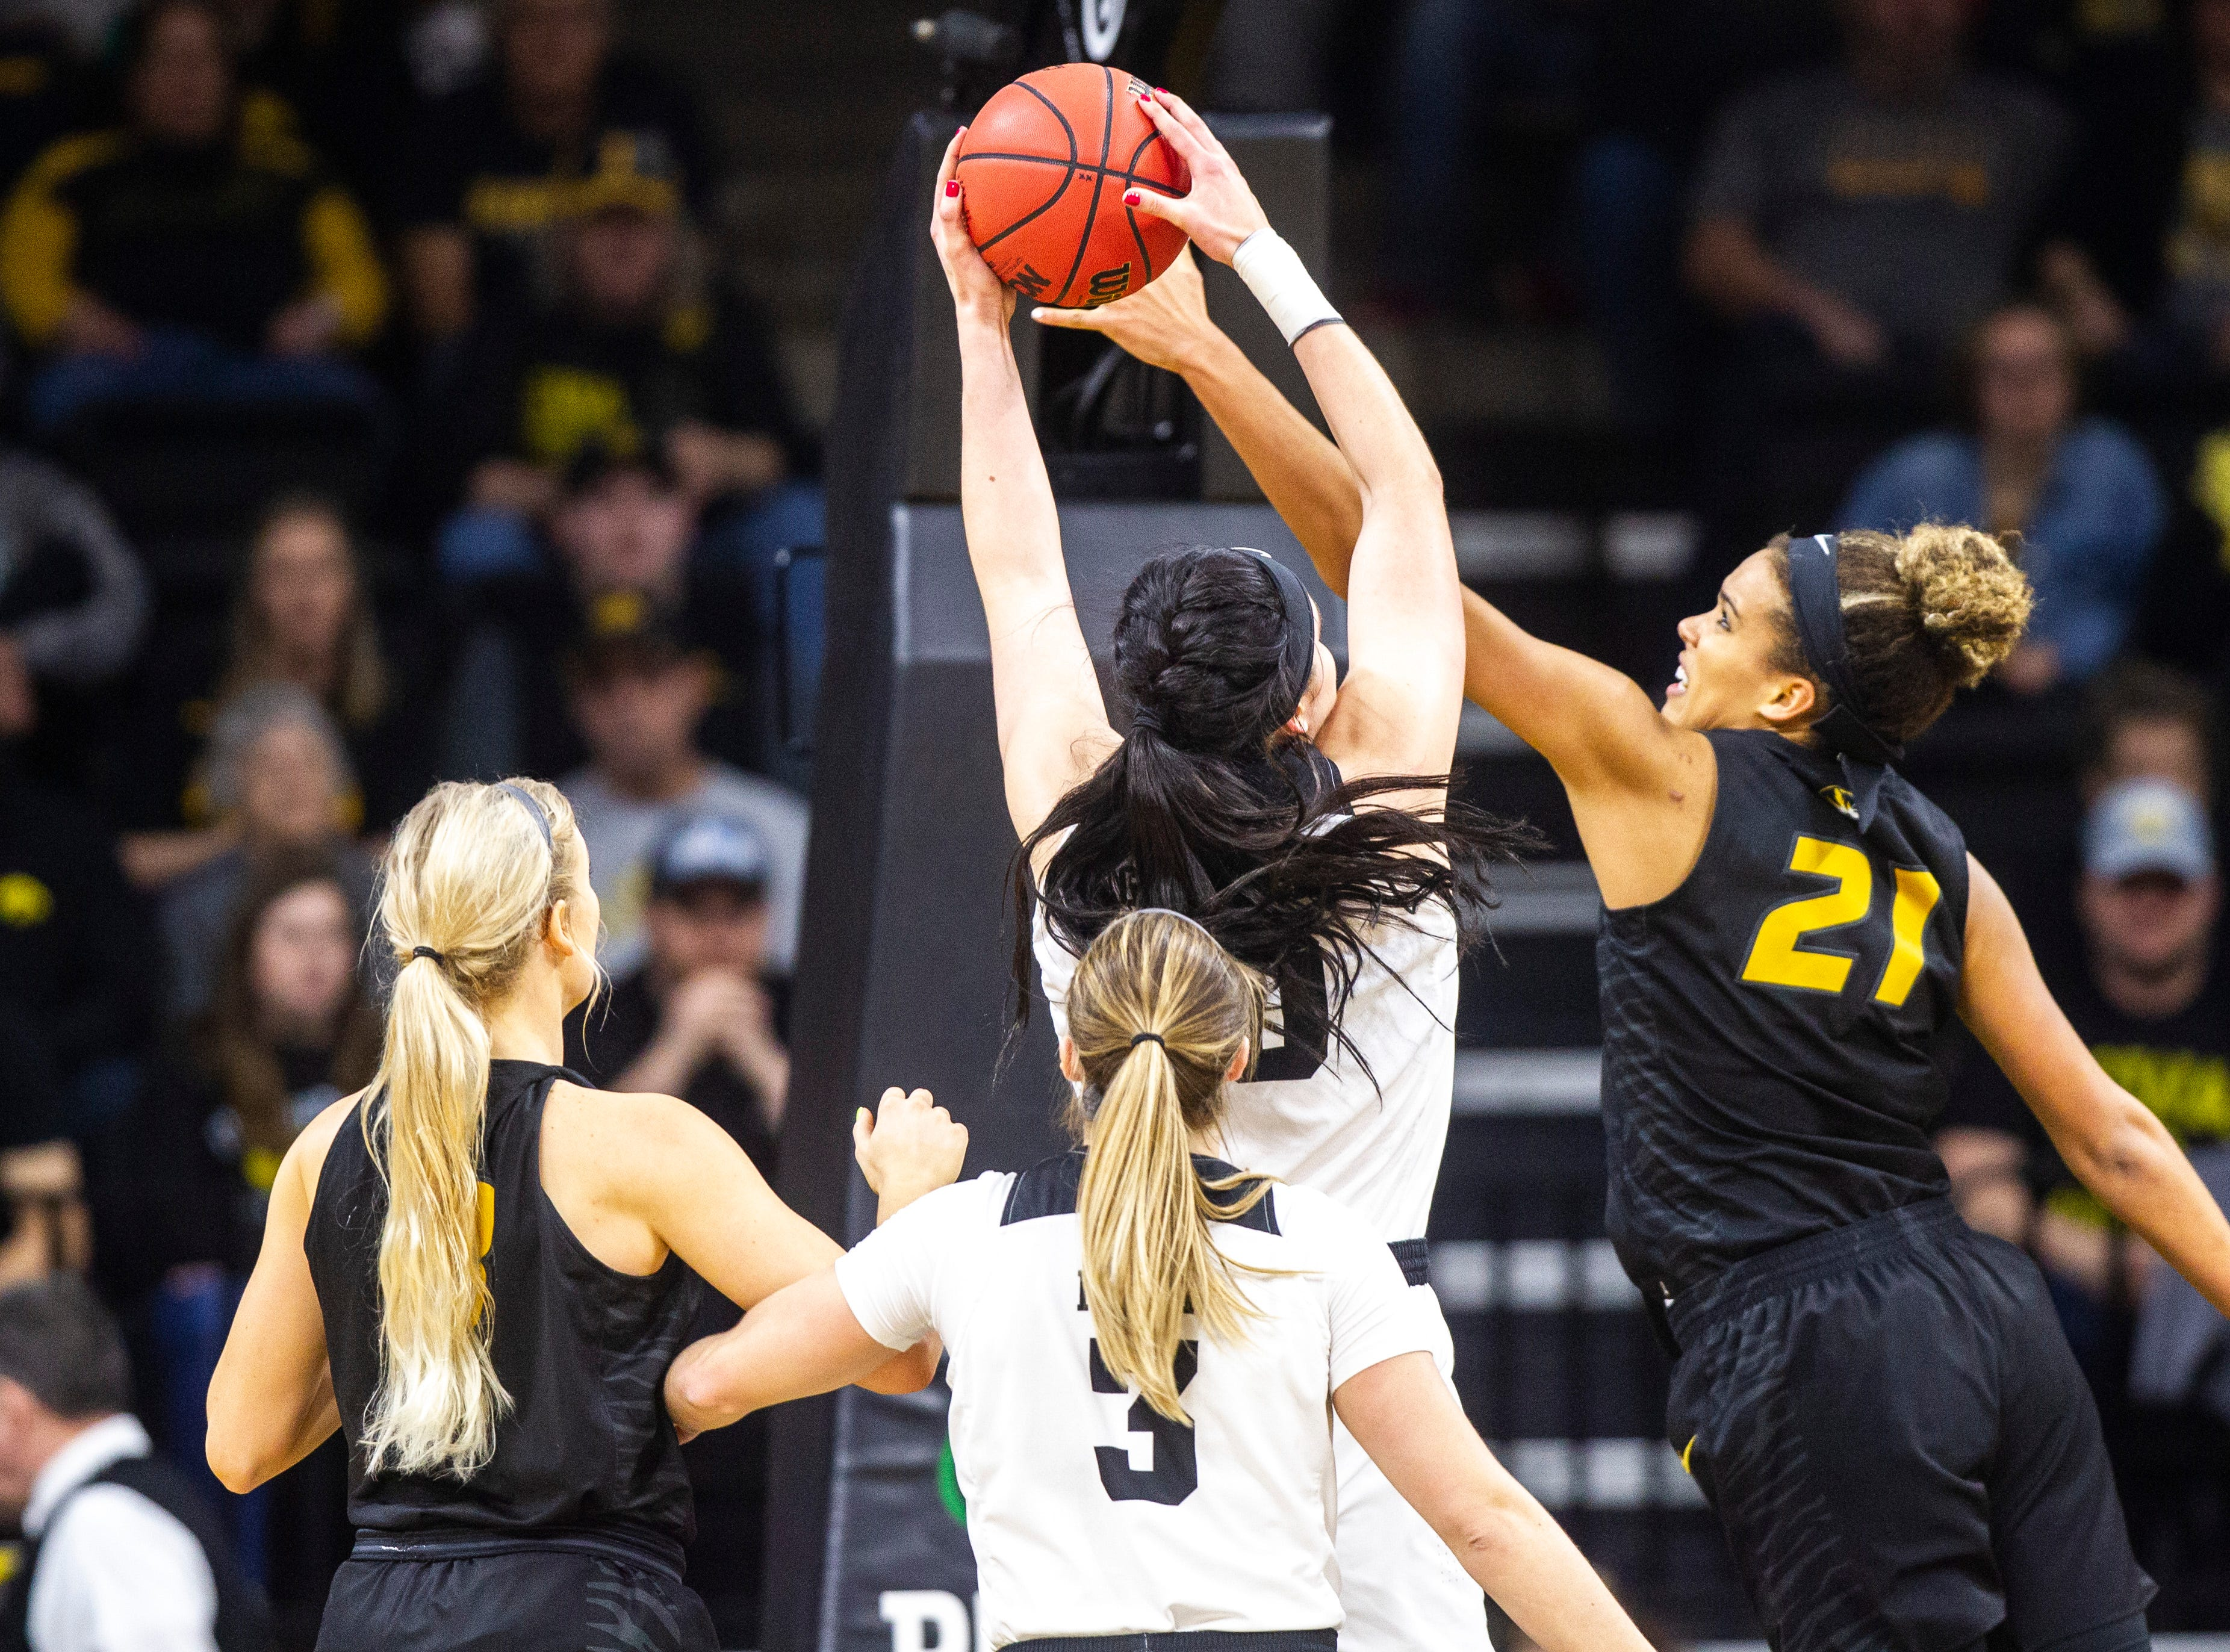 Iowa center Megan Gustafson (10) grabs a rebound against Missouri forward Cierra Porter (21) during a NCAA women's basketball tournament second-round game, Sunday, March 24, 2019, at Carver-Hawkeye Arena in Iowa City, Iowa.